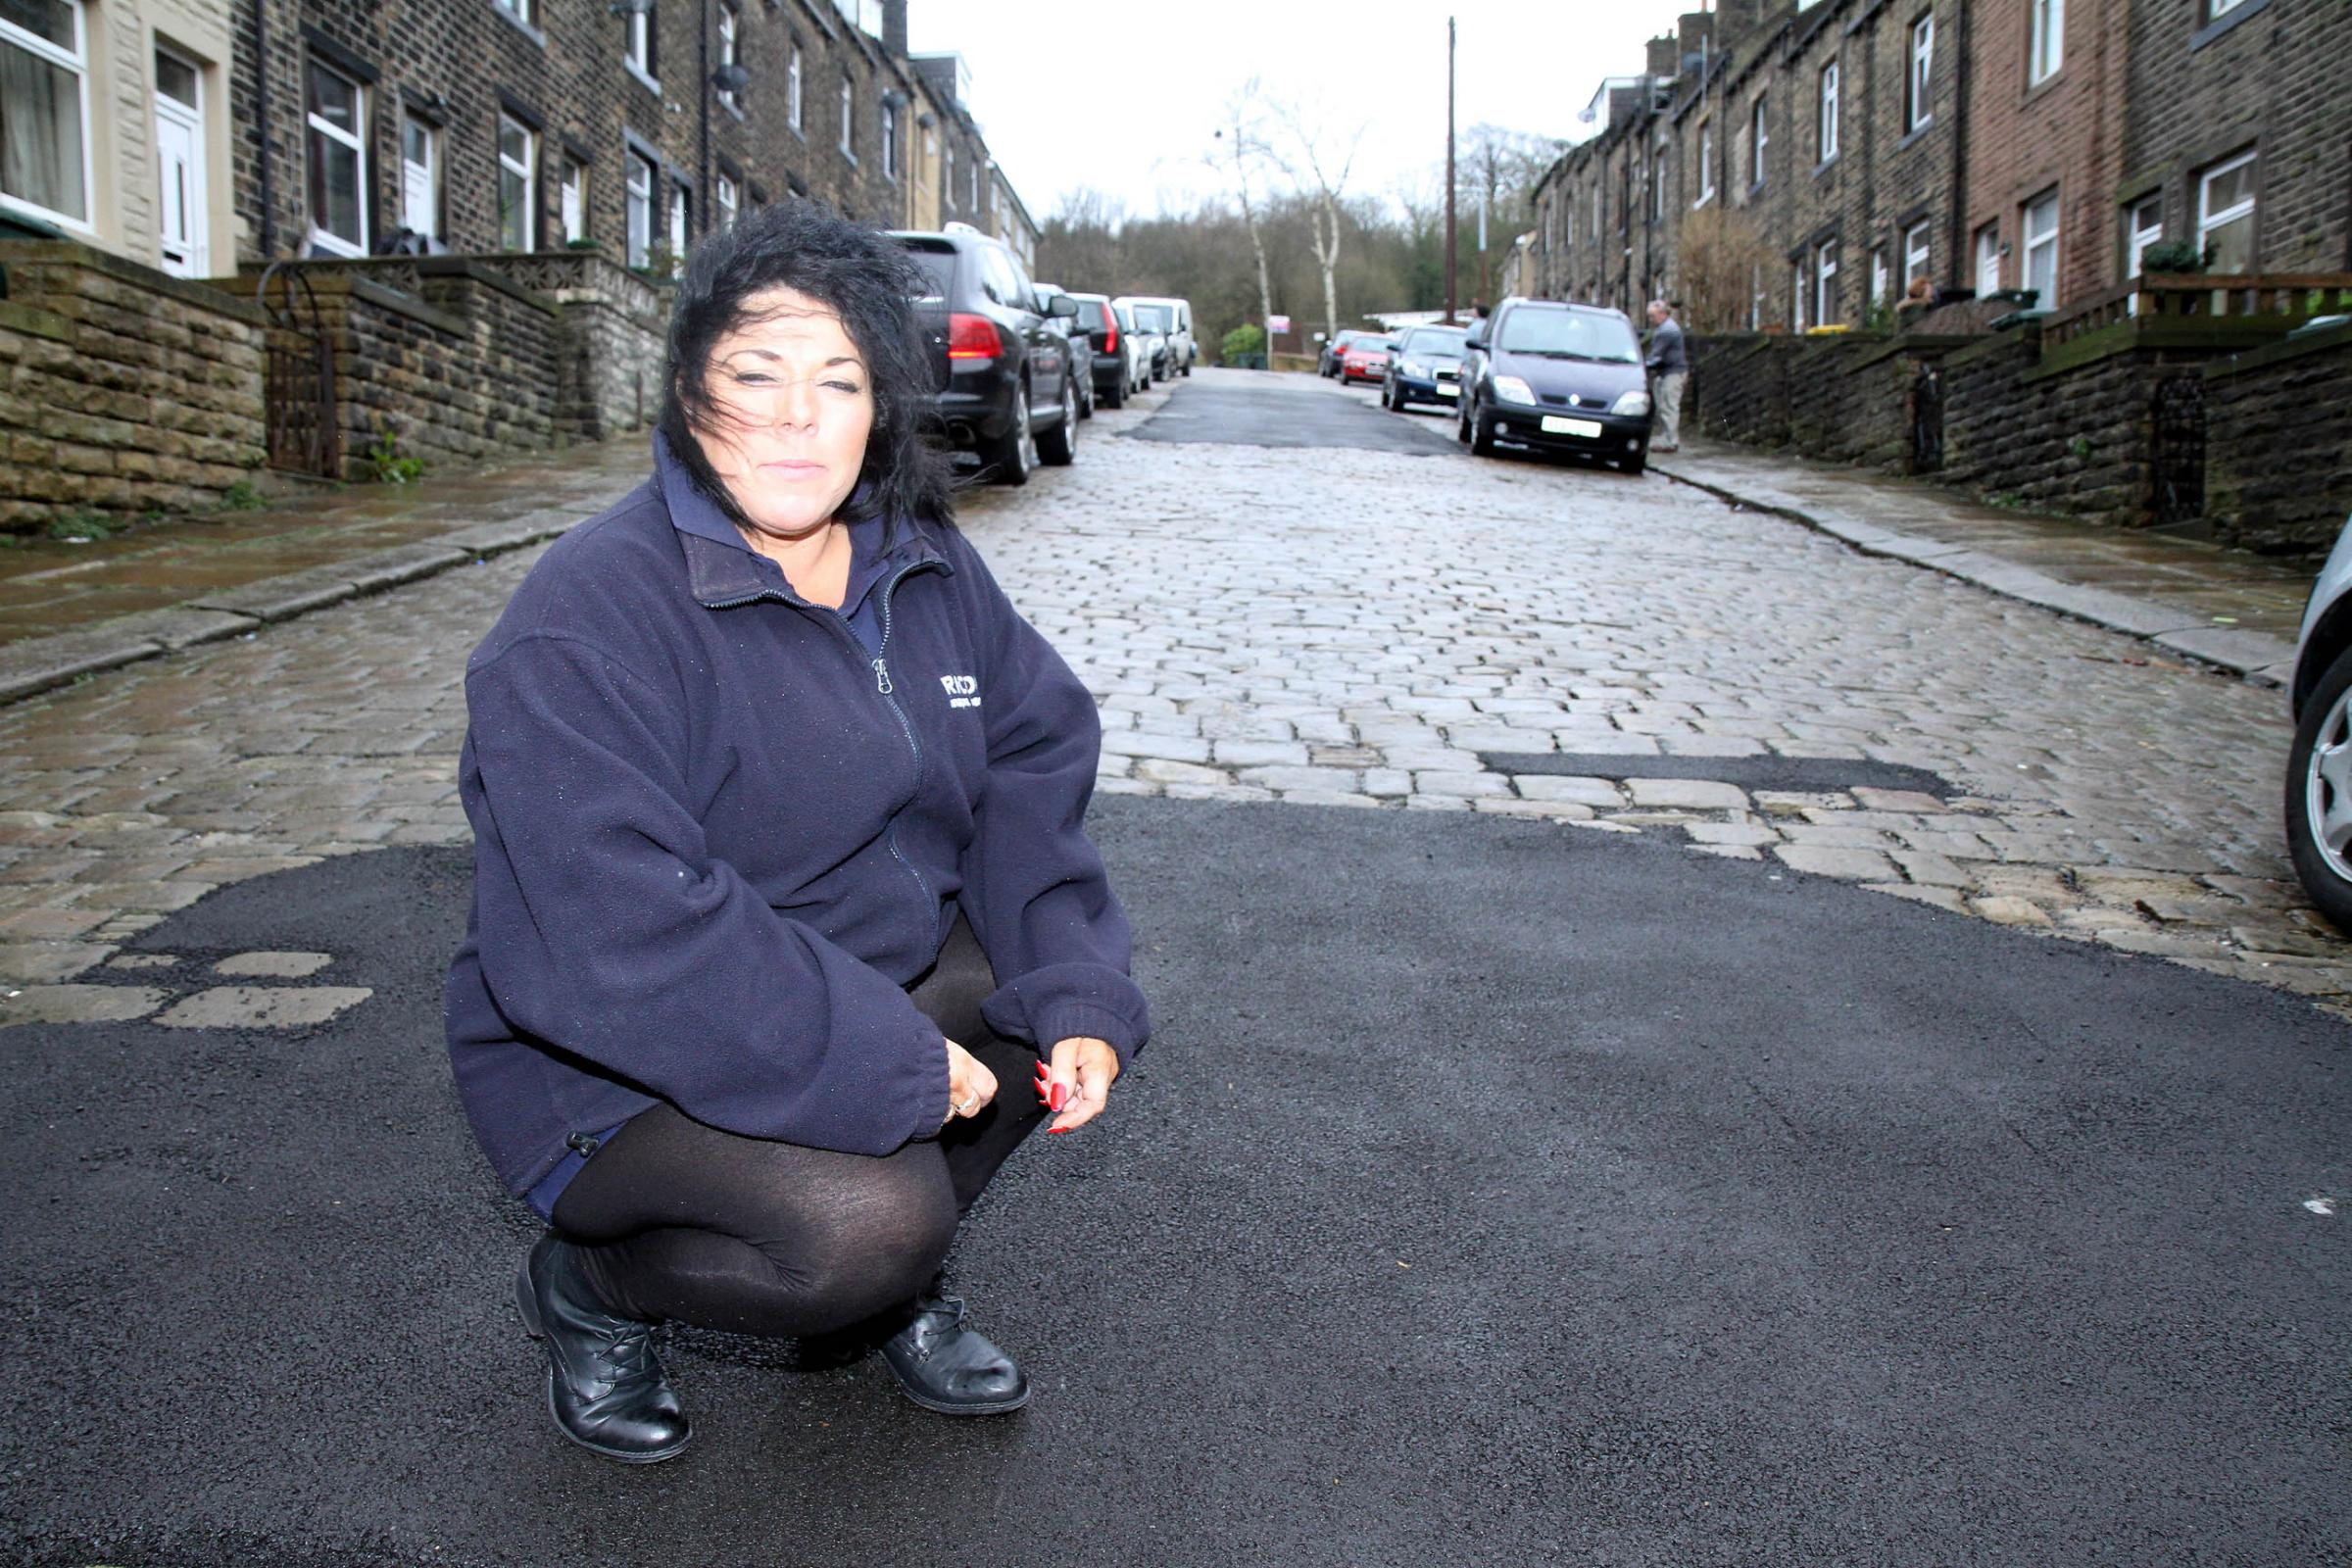 Carole Oksuz outside her Cliffe Terrace home in Keighley where asphalt has been used to repair historic damaged setts